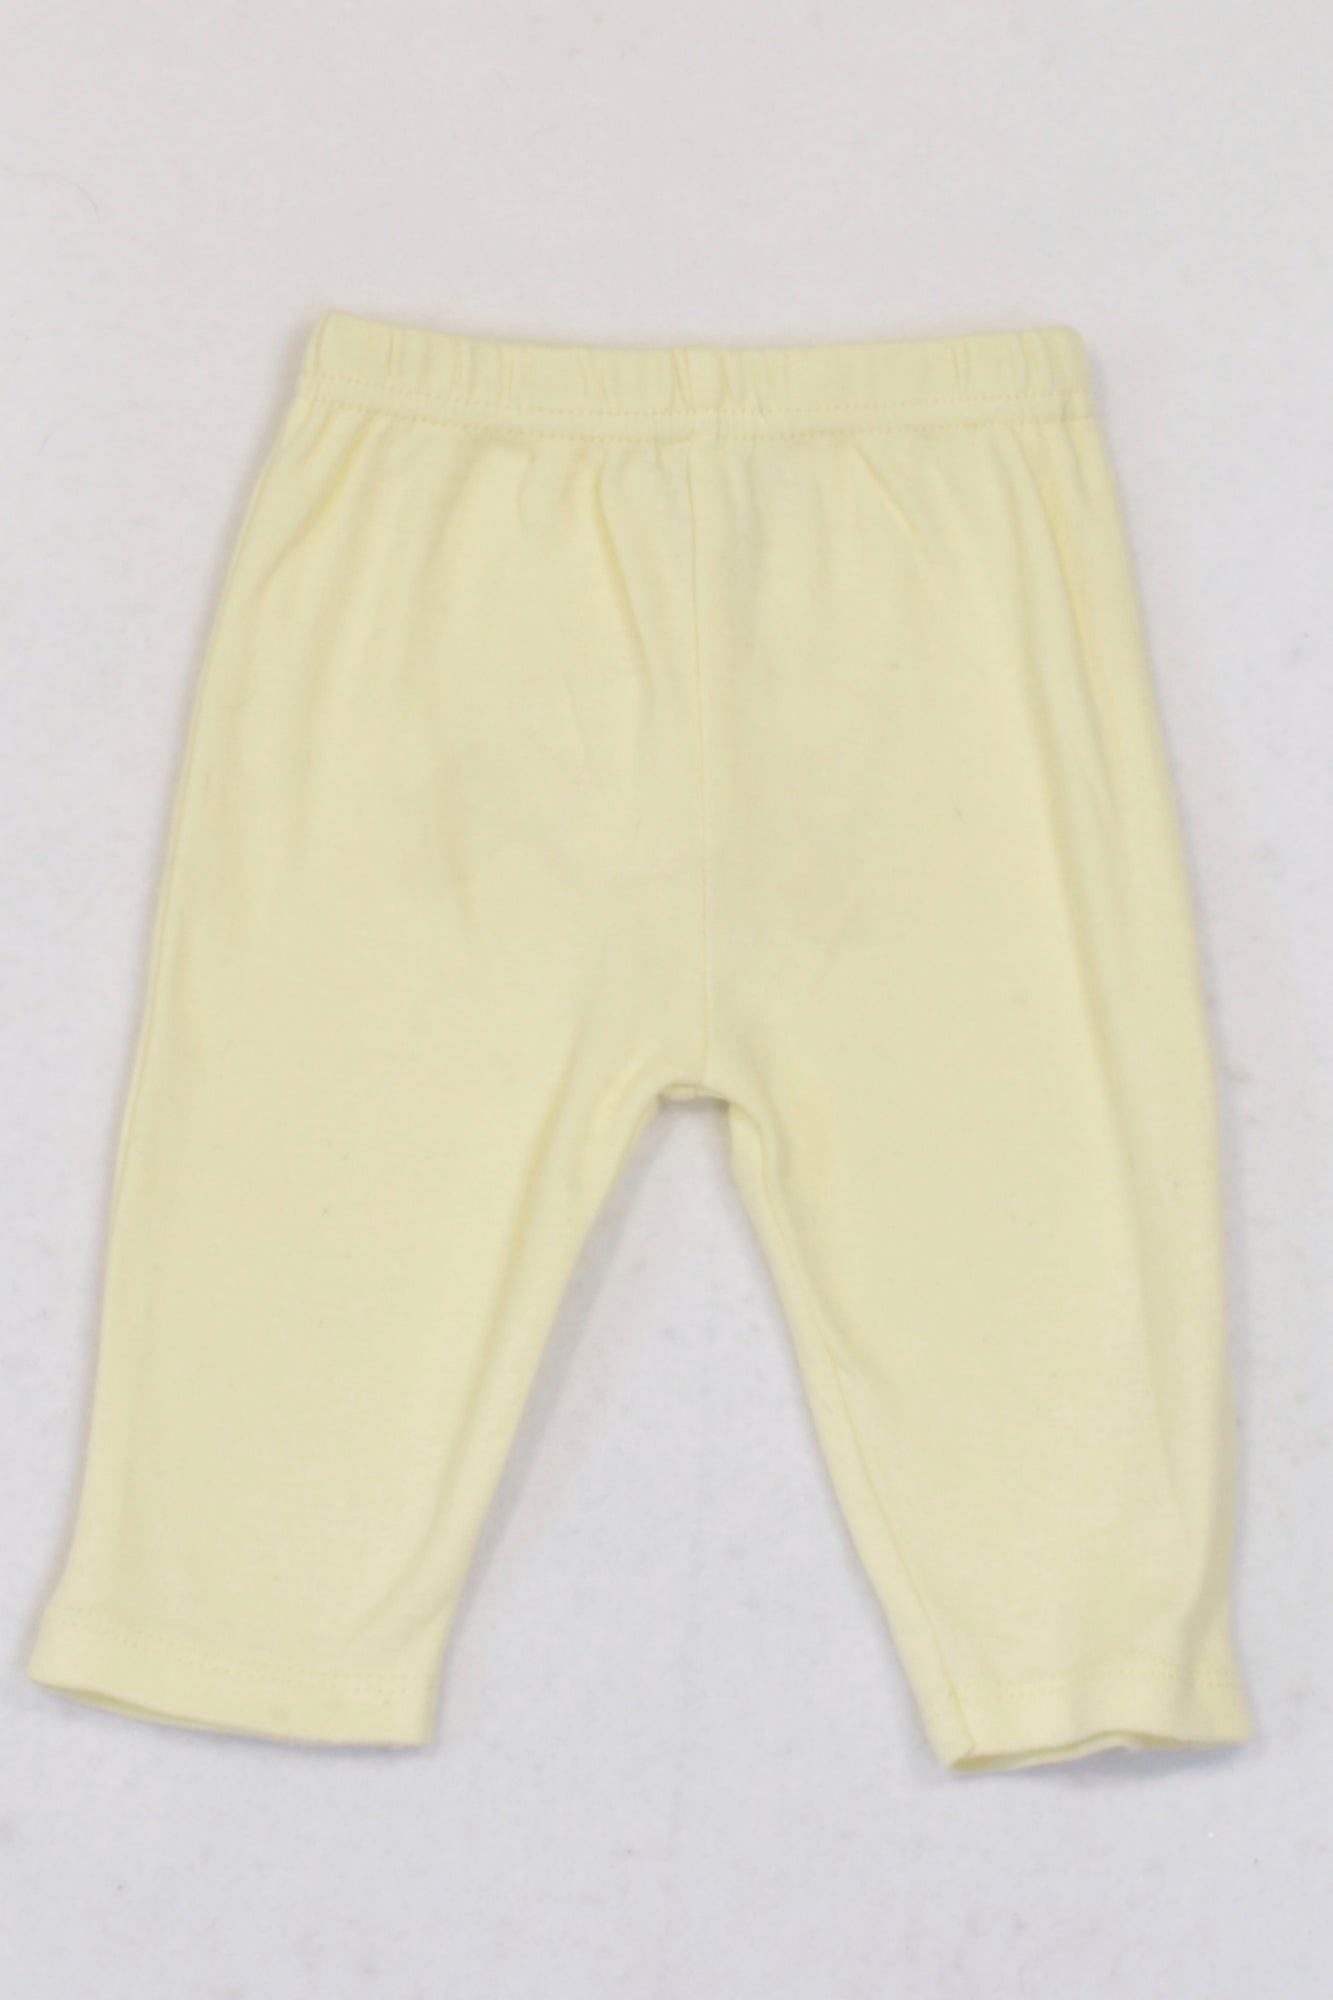 René Rofé Baby  Yellow Star Bum Leggings Girls 0-3 months